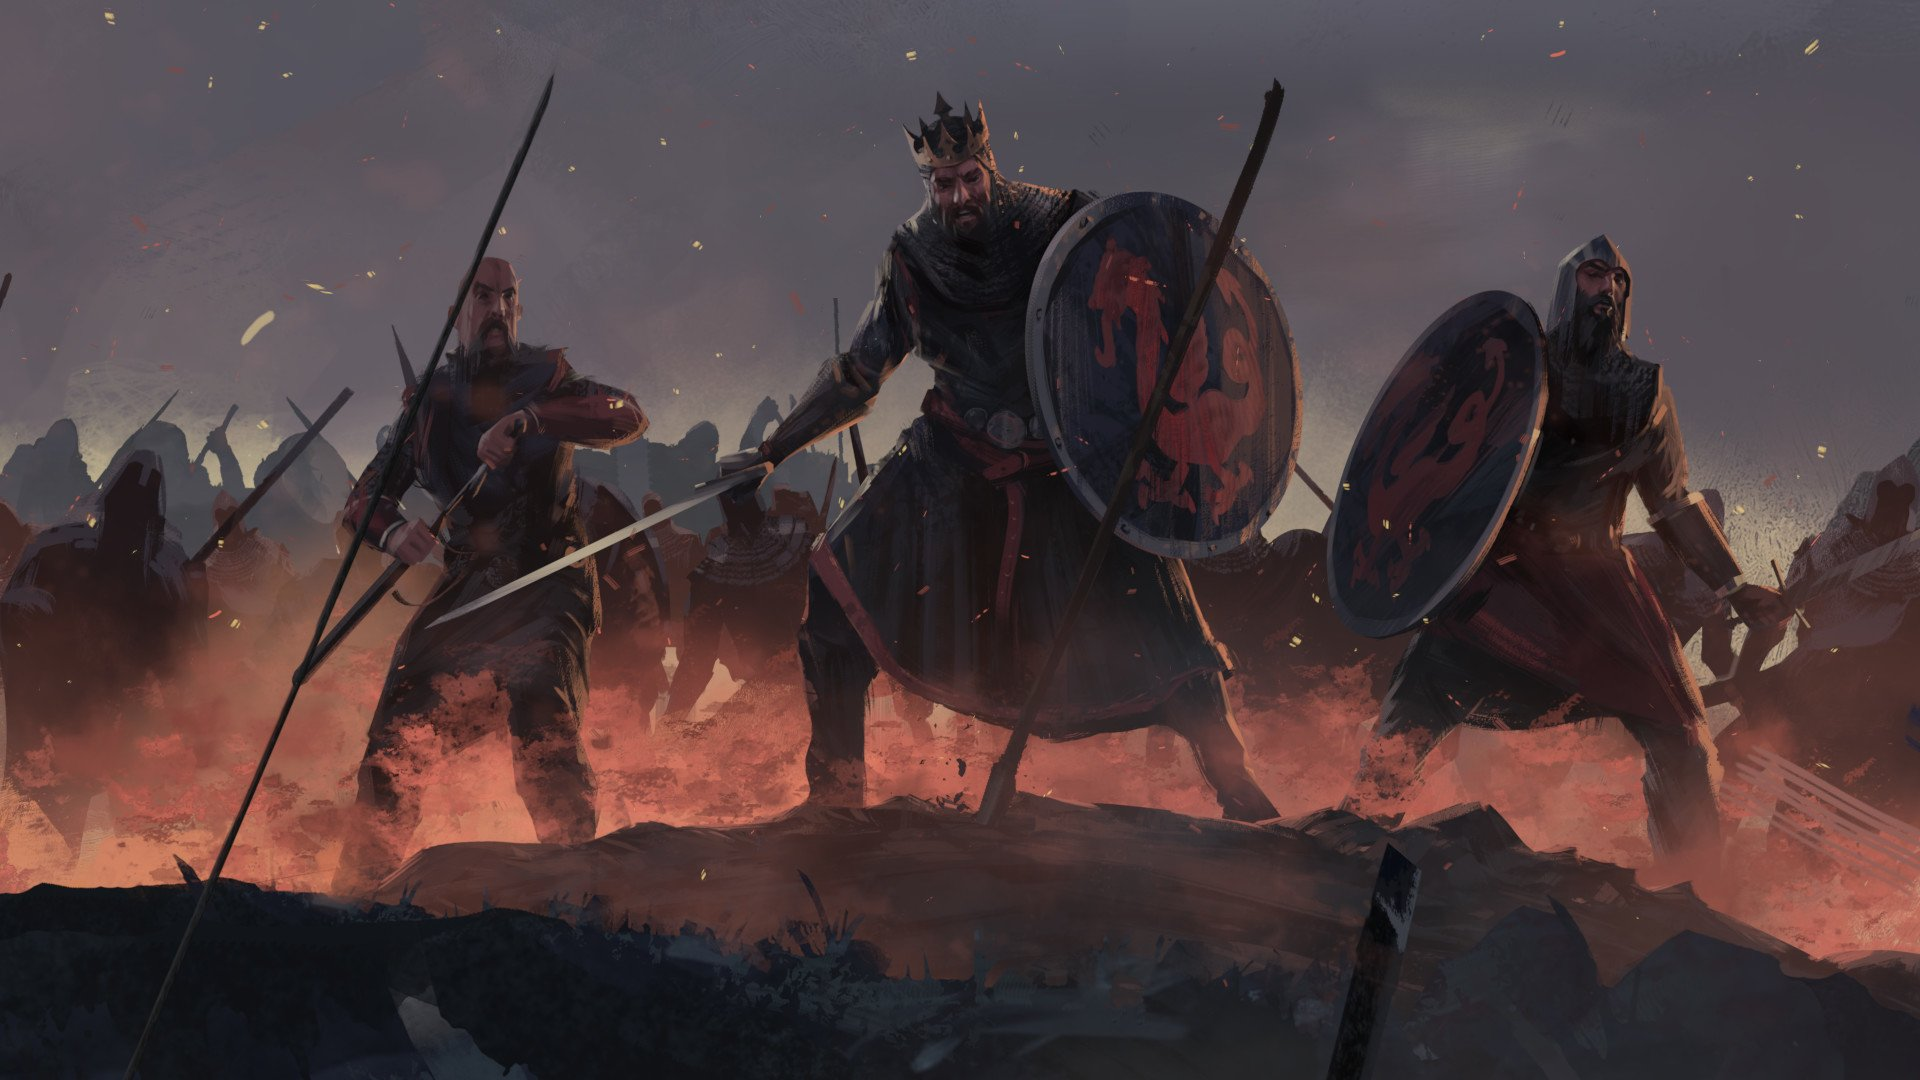 电子游戏 - Total War Saga: Thrones of Britannia  壁纸